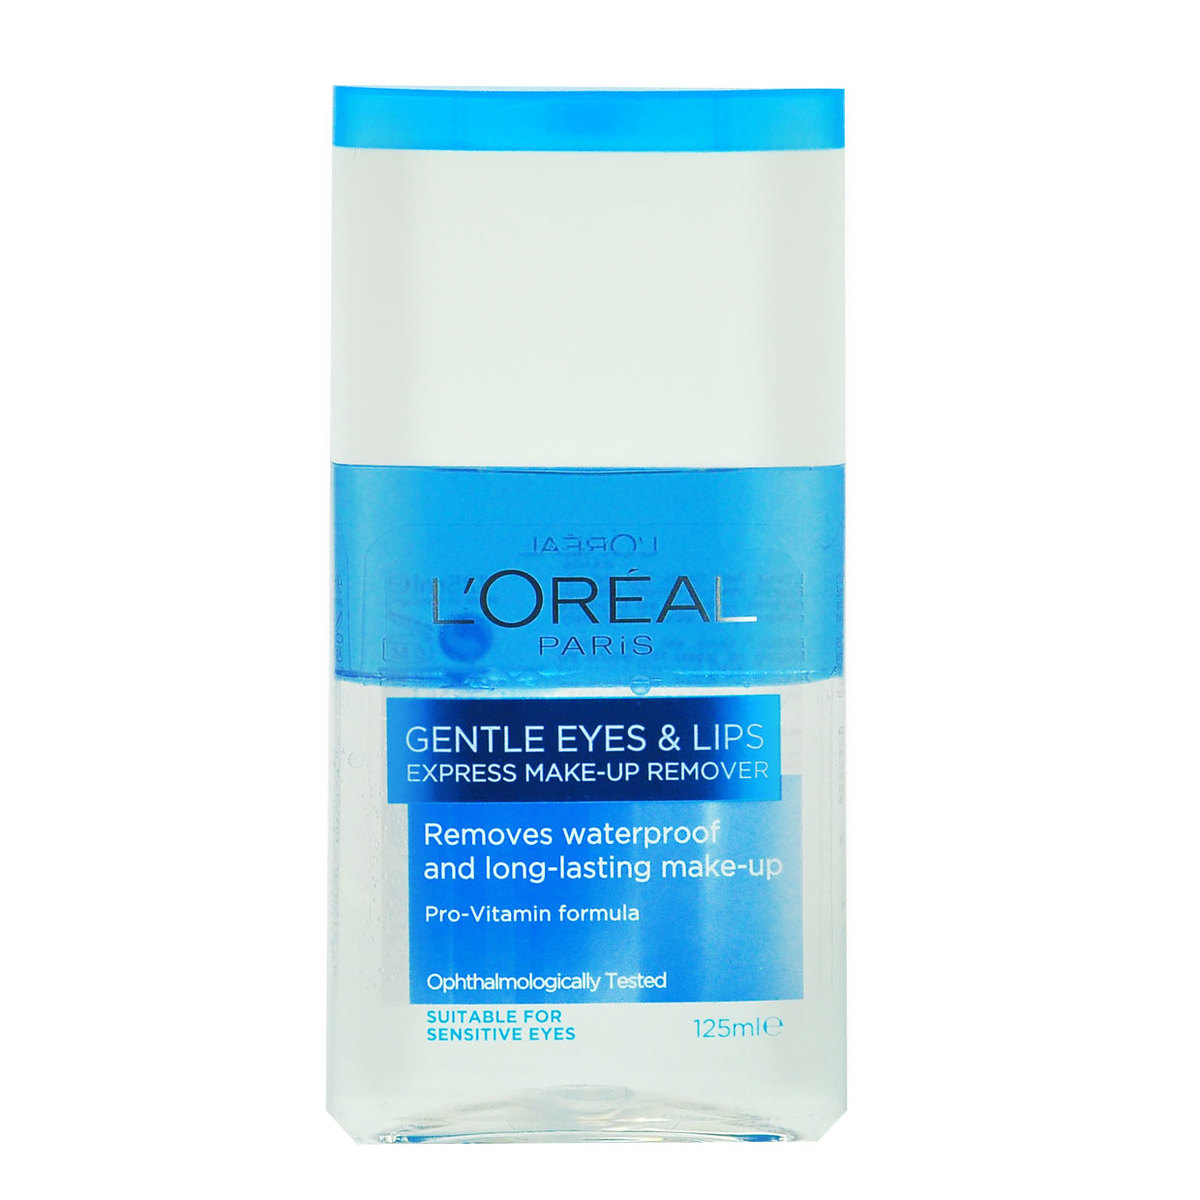 Gentle Eyes & Lips Express Make-up Remover - [Parallel Import Product]